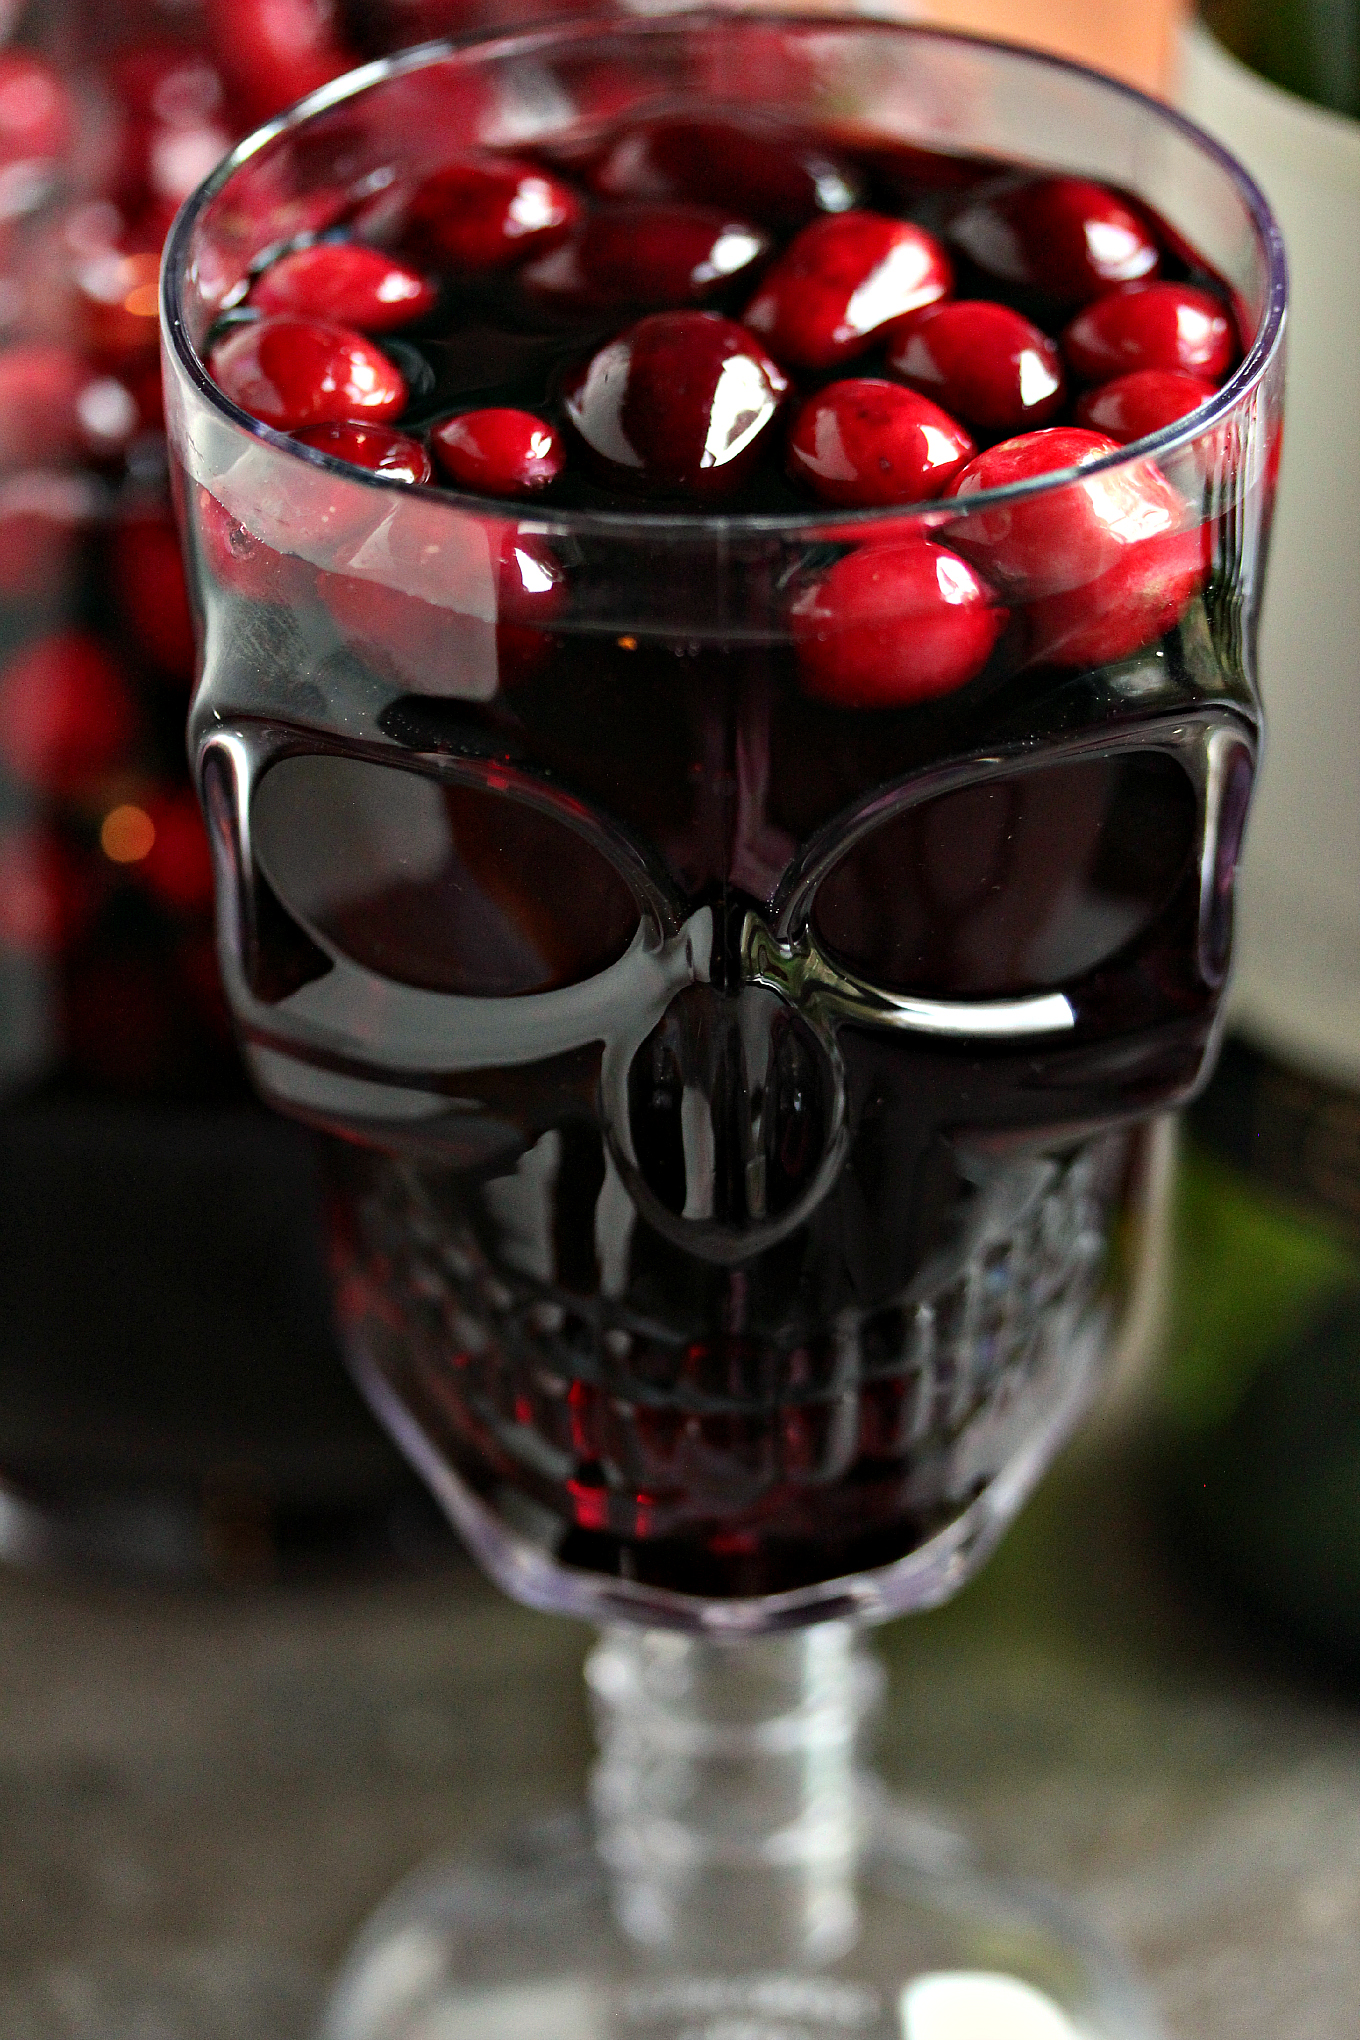 Cranberry Sangria aka Devil's Sangria- Cranberry Sangria is the perfect drink for Fall and Winter. Whip up a batch for Thanksgiving or Christmas. You can jazz it up for Halloween and call it Devil's Sangria! #sponsored #DiabloHalloween #contest